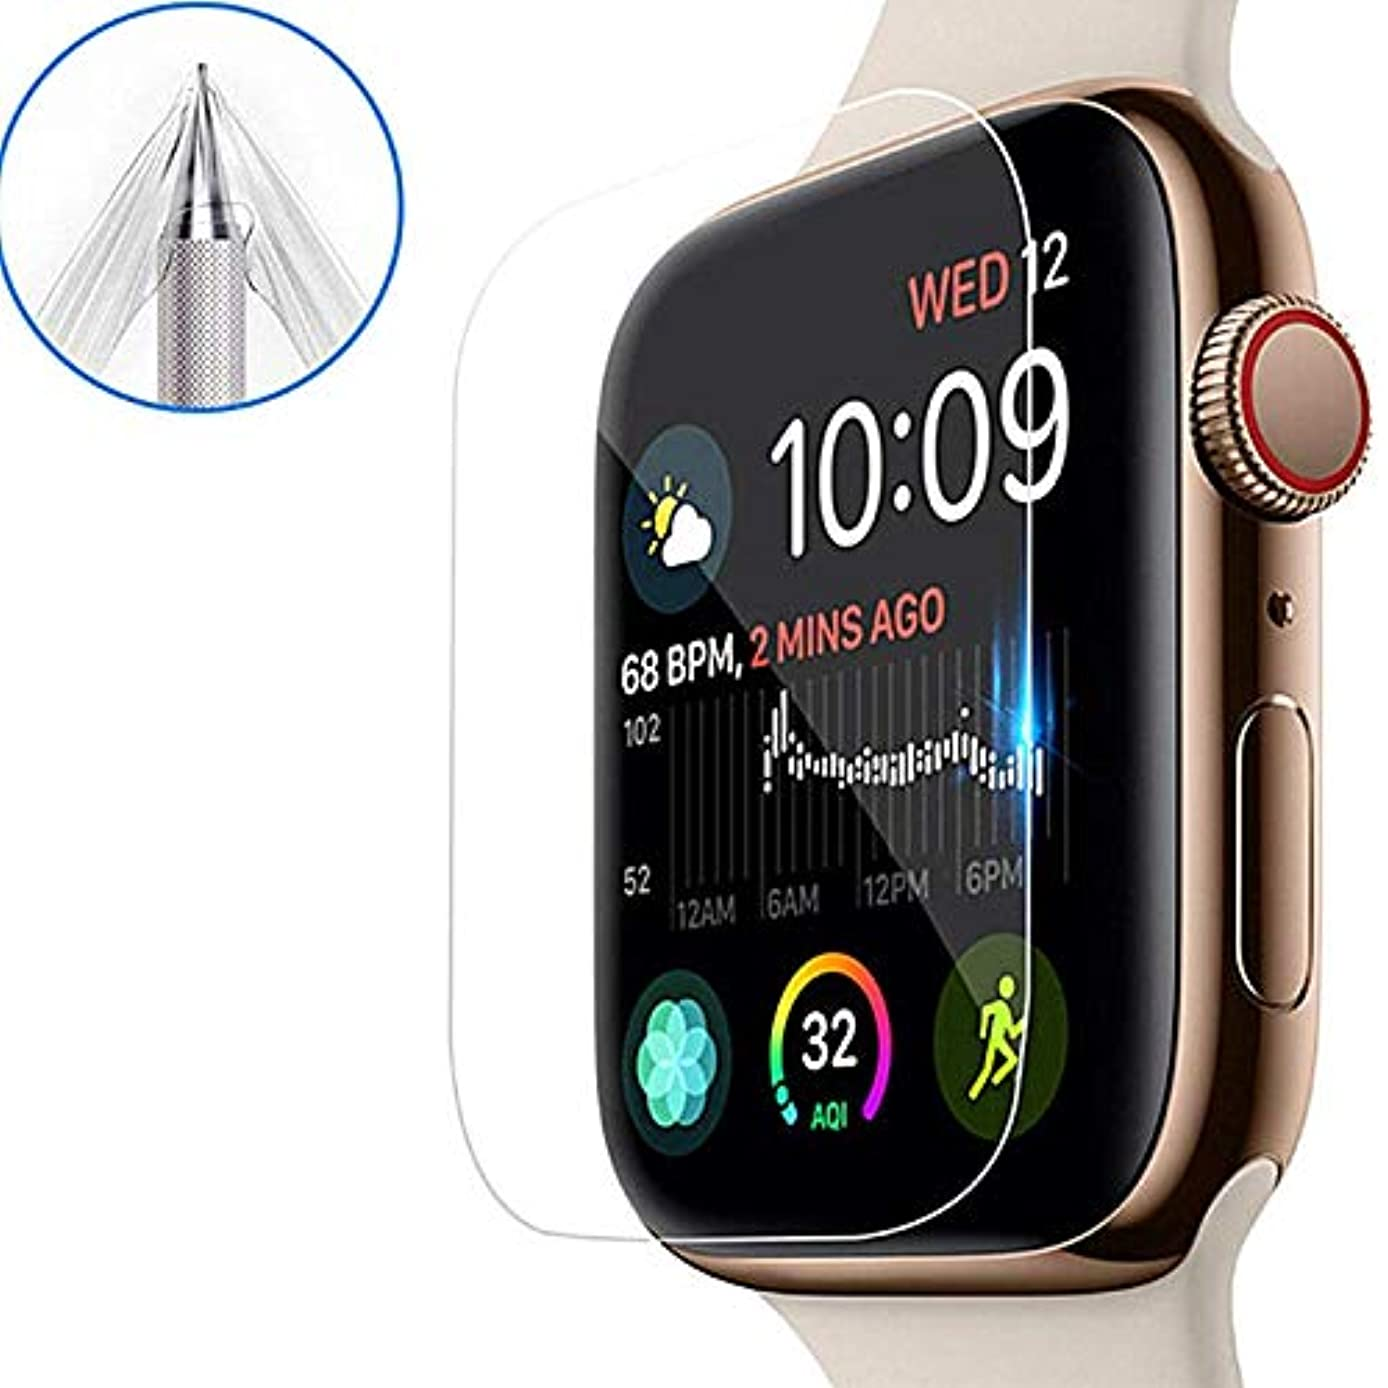 for Apple Watch Series 4 Aluminum Screen Protector Soft Film (44mm), [3pack] Ultra Clear Protective Film (Not Glass) for iWatch 4 2018 New Apple Watch 4 (44mm)